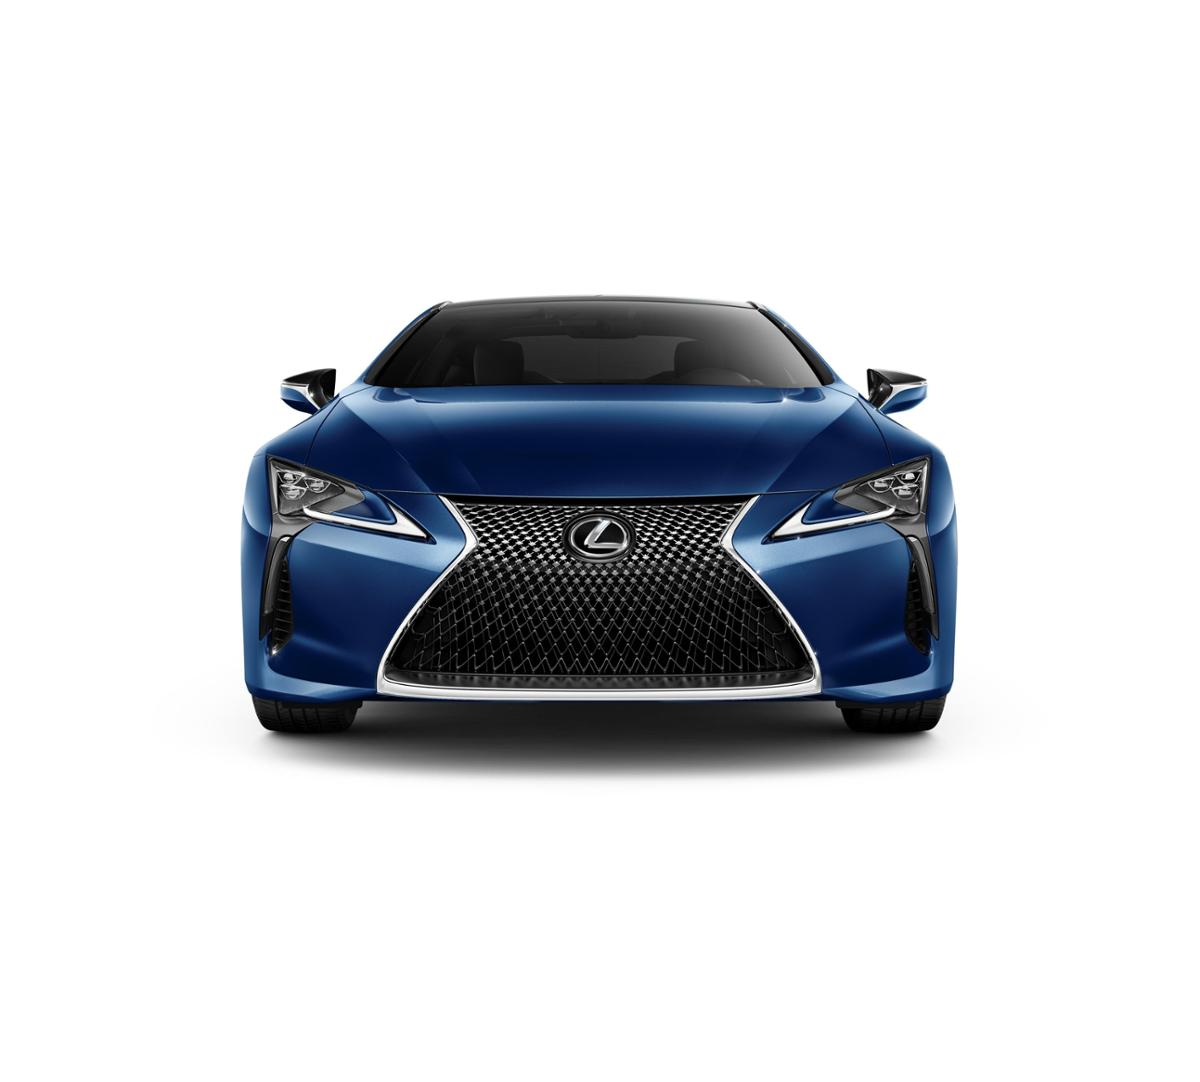 Used Lexus In Nj: 2018 Lexus LC 500 For Sale In San Juan